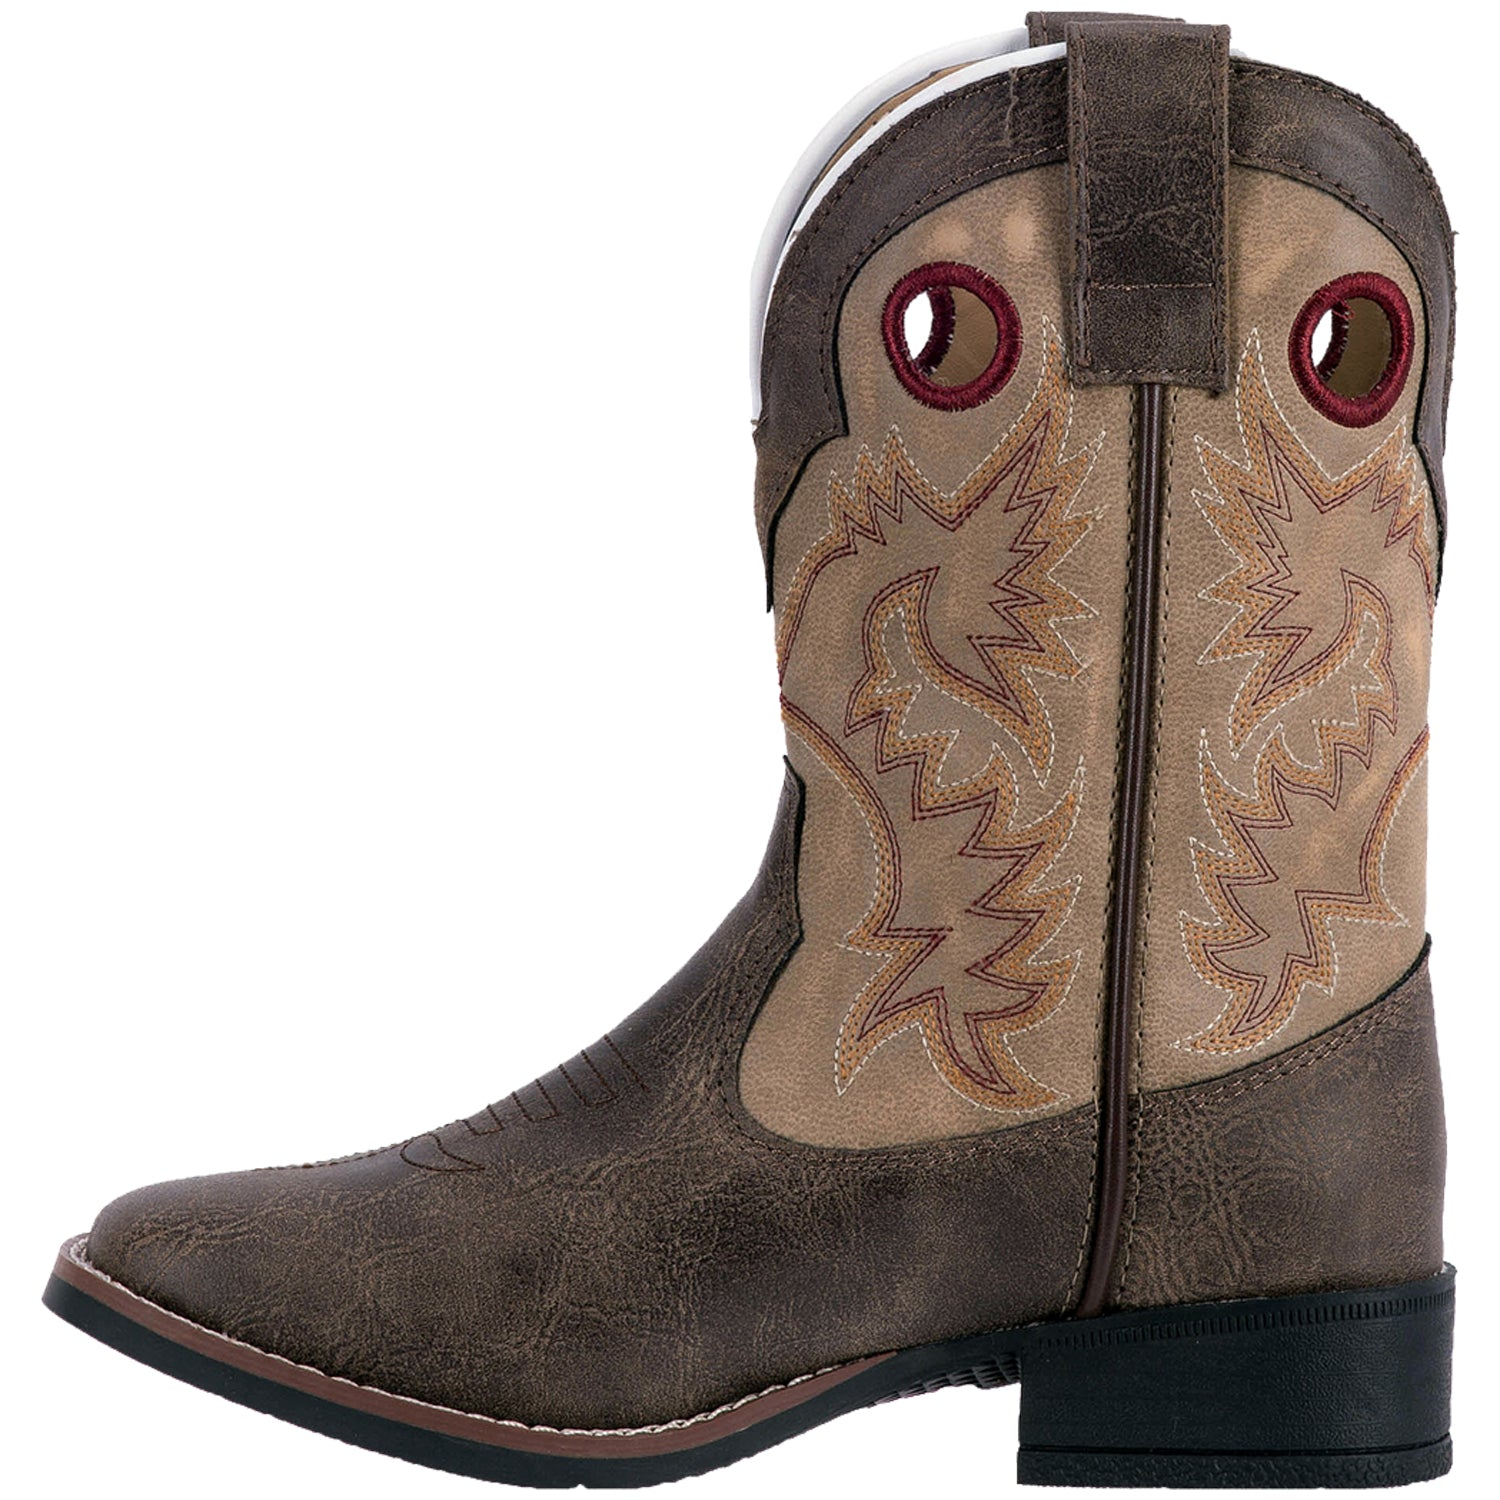 COLLARED CHILDREN'S BOOT - Dan Post Boots